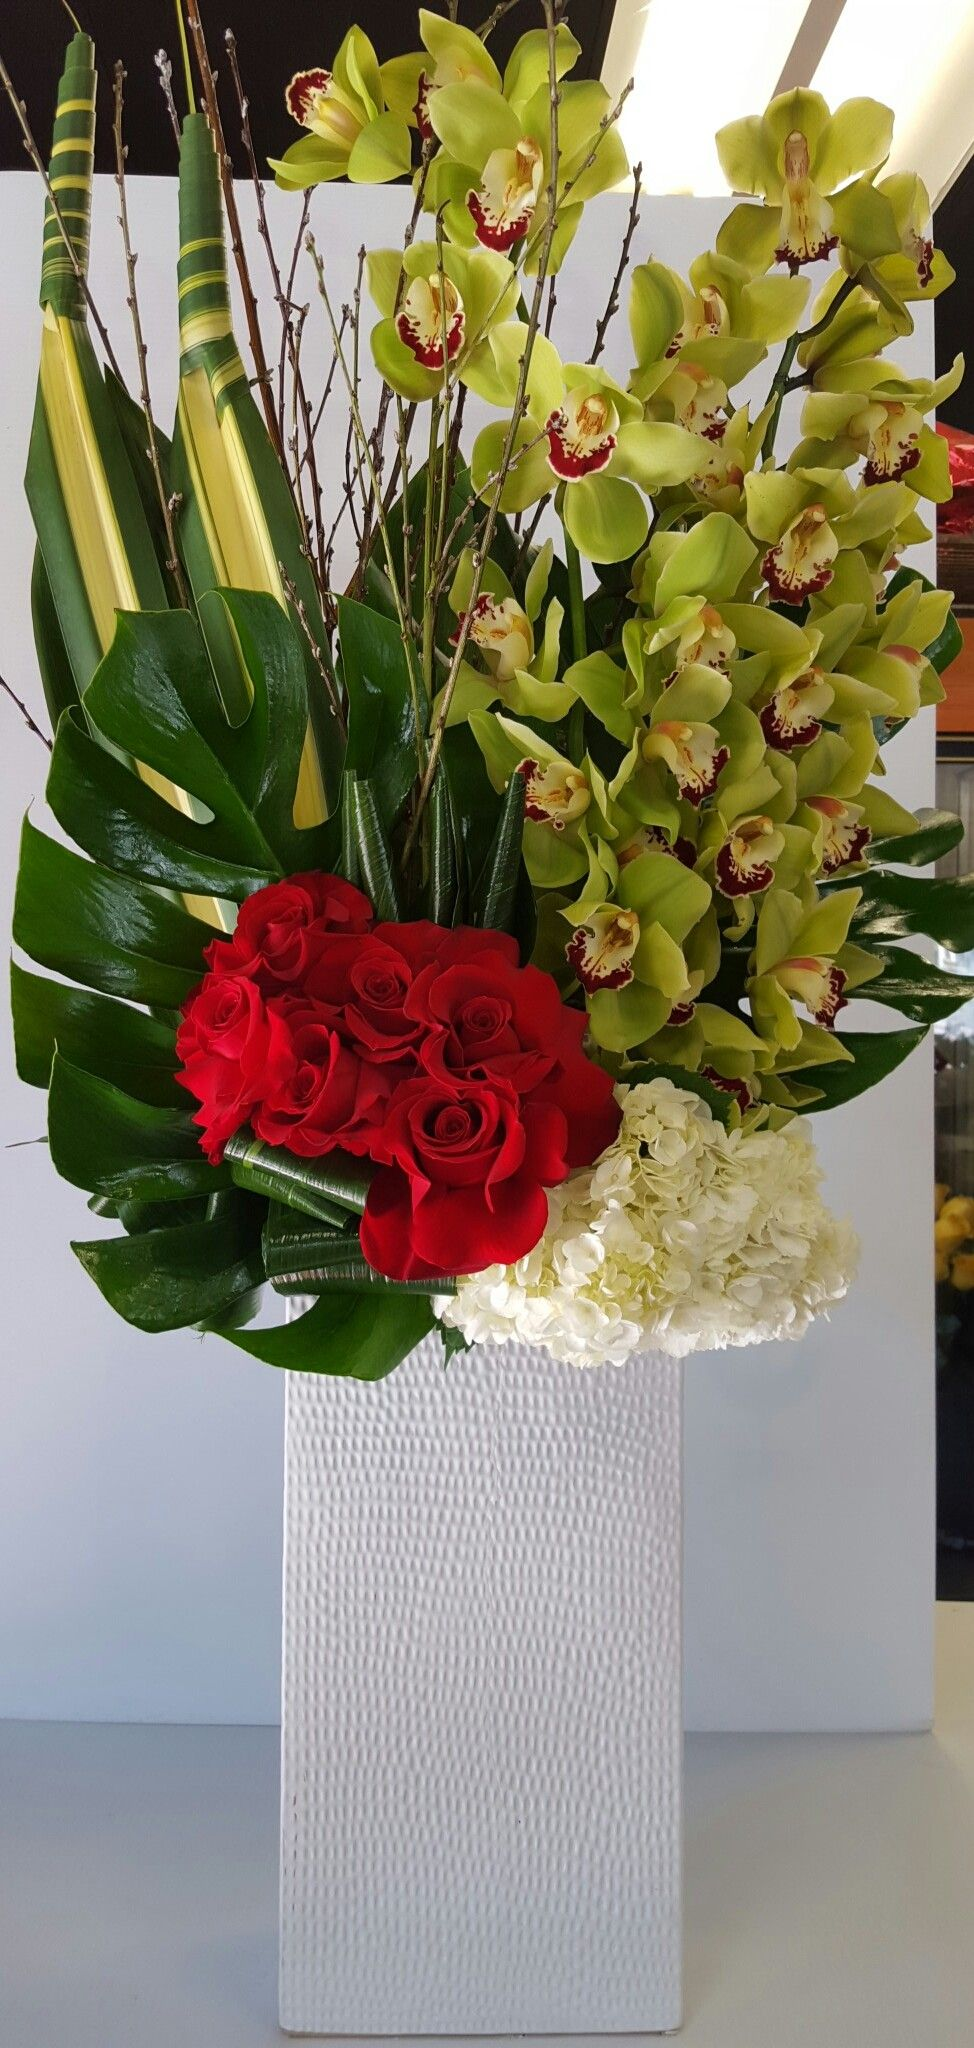 Send The Modern Orchids And Roses Bouquet Of Flowers From Duran S Flowers In Pasade Tropical Floral Arrangements Orchid Flower Arrangements Flower Arrangements